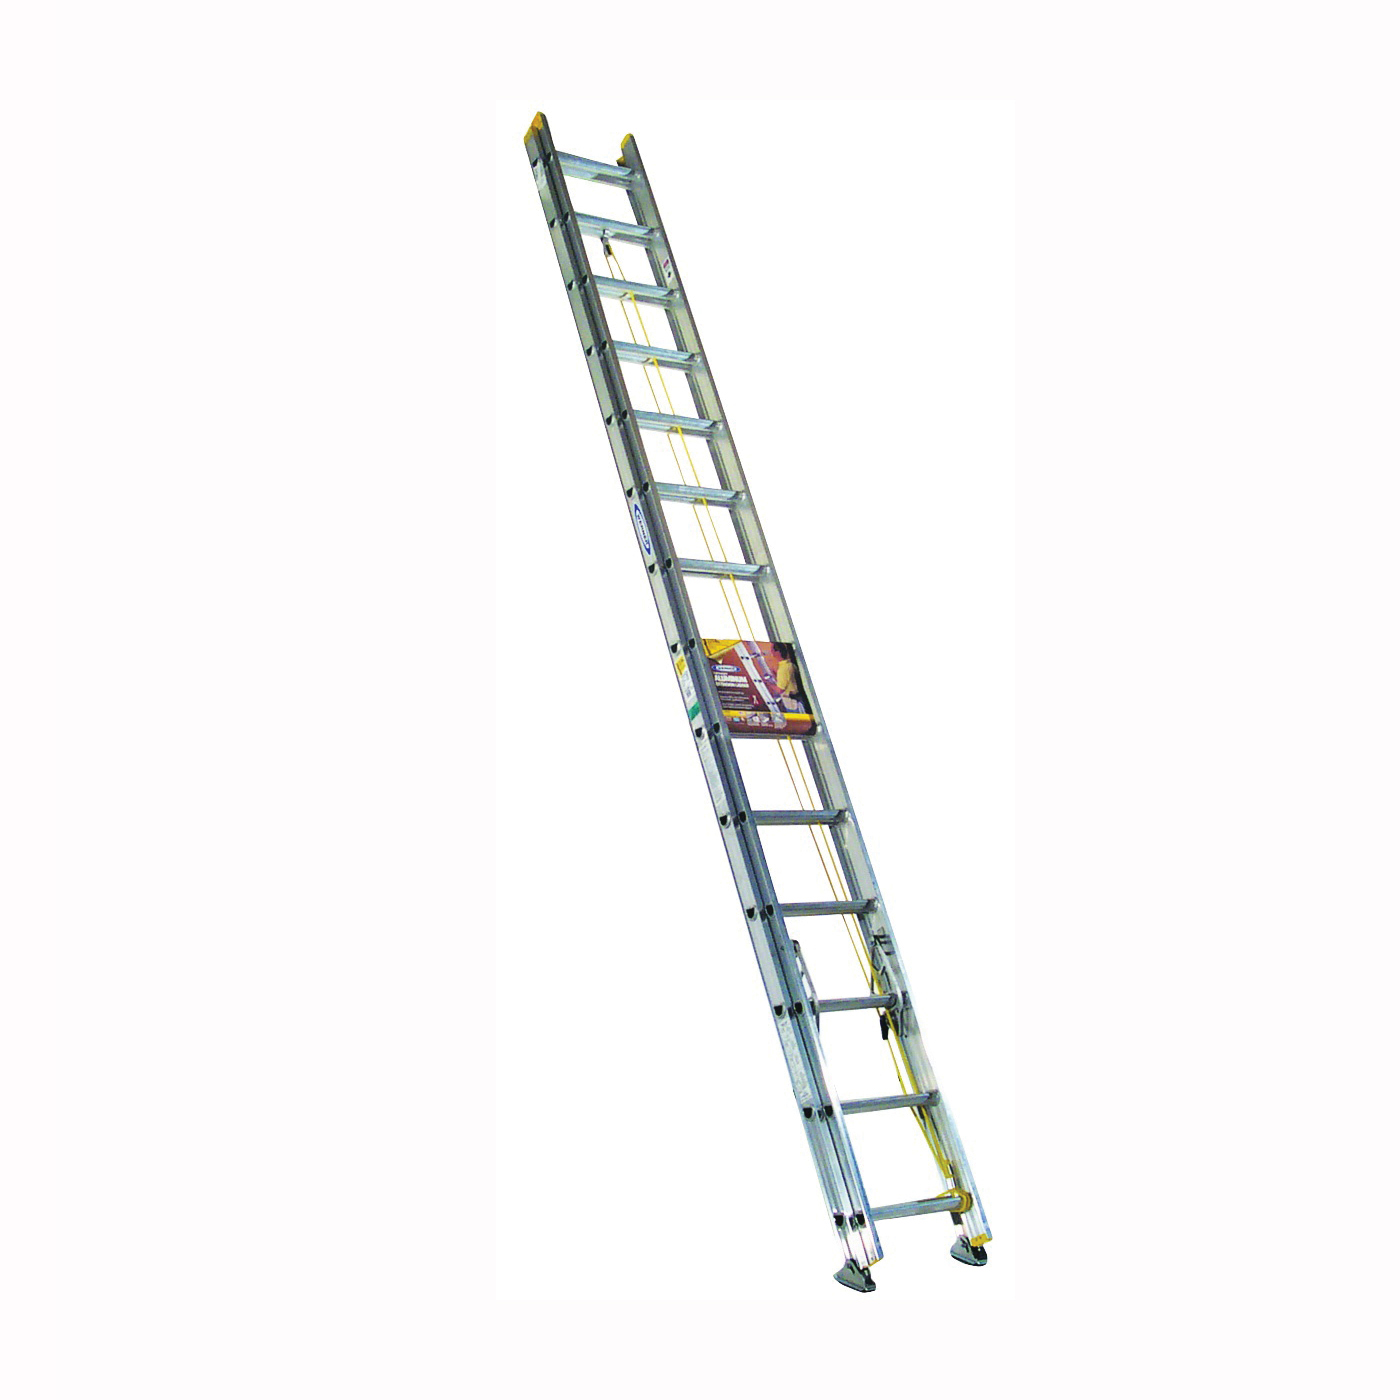 Picture of WERNER D1228-2 Extension Ladder, 27 ft H Reach, 225 lb, Aluminum